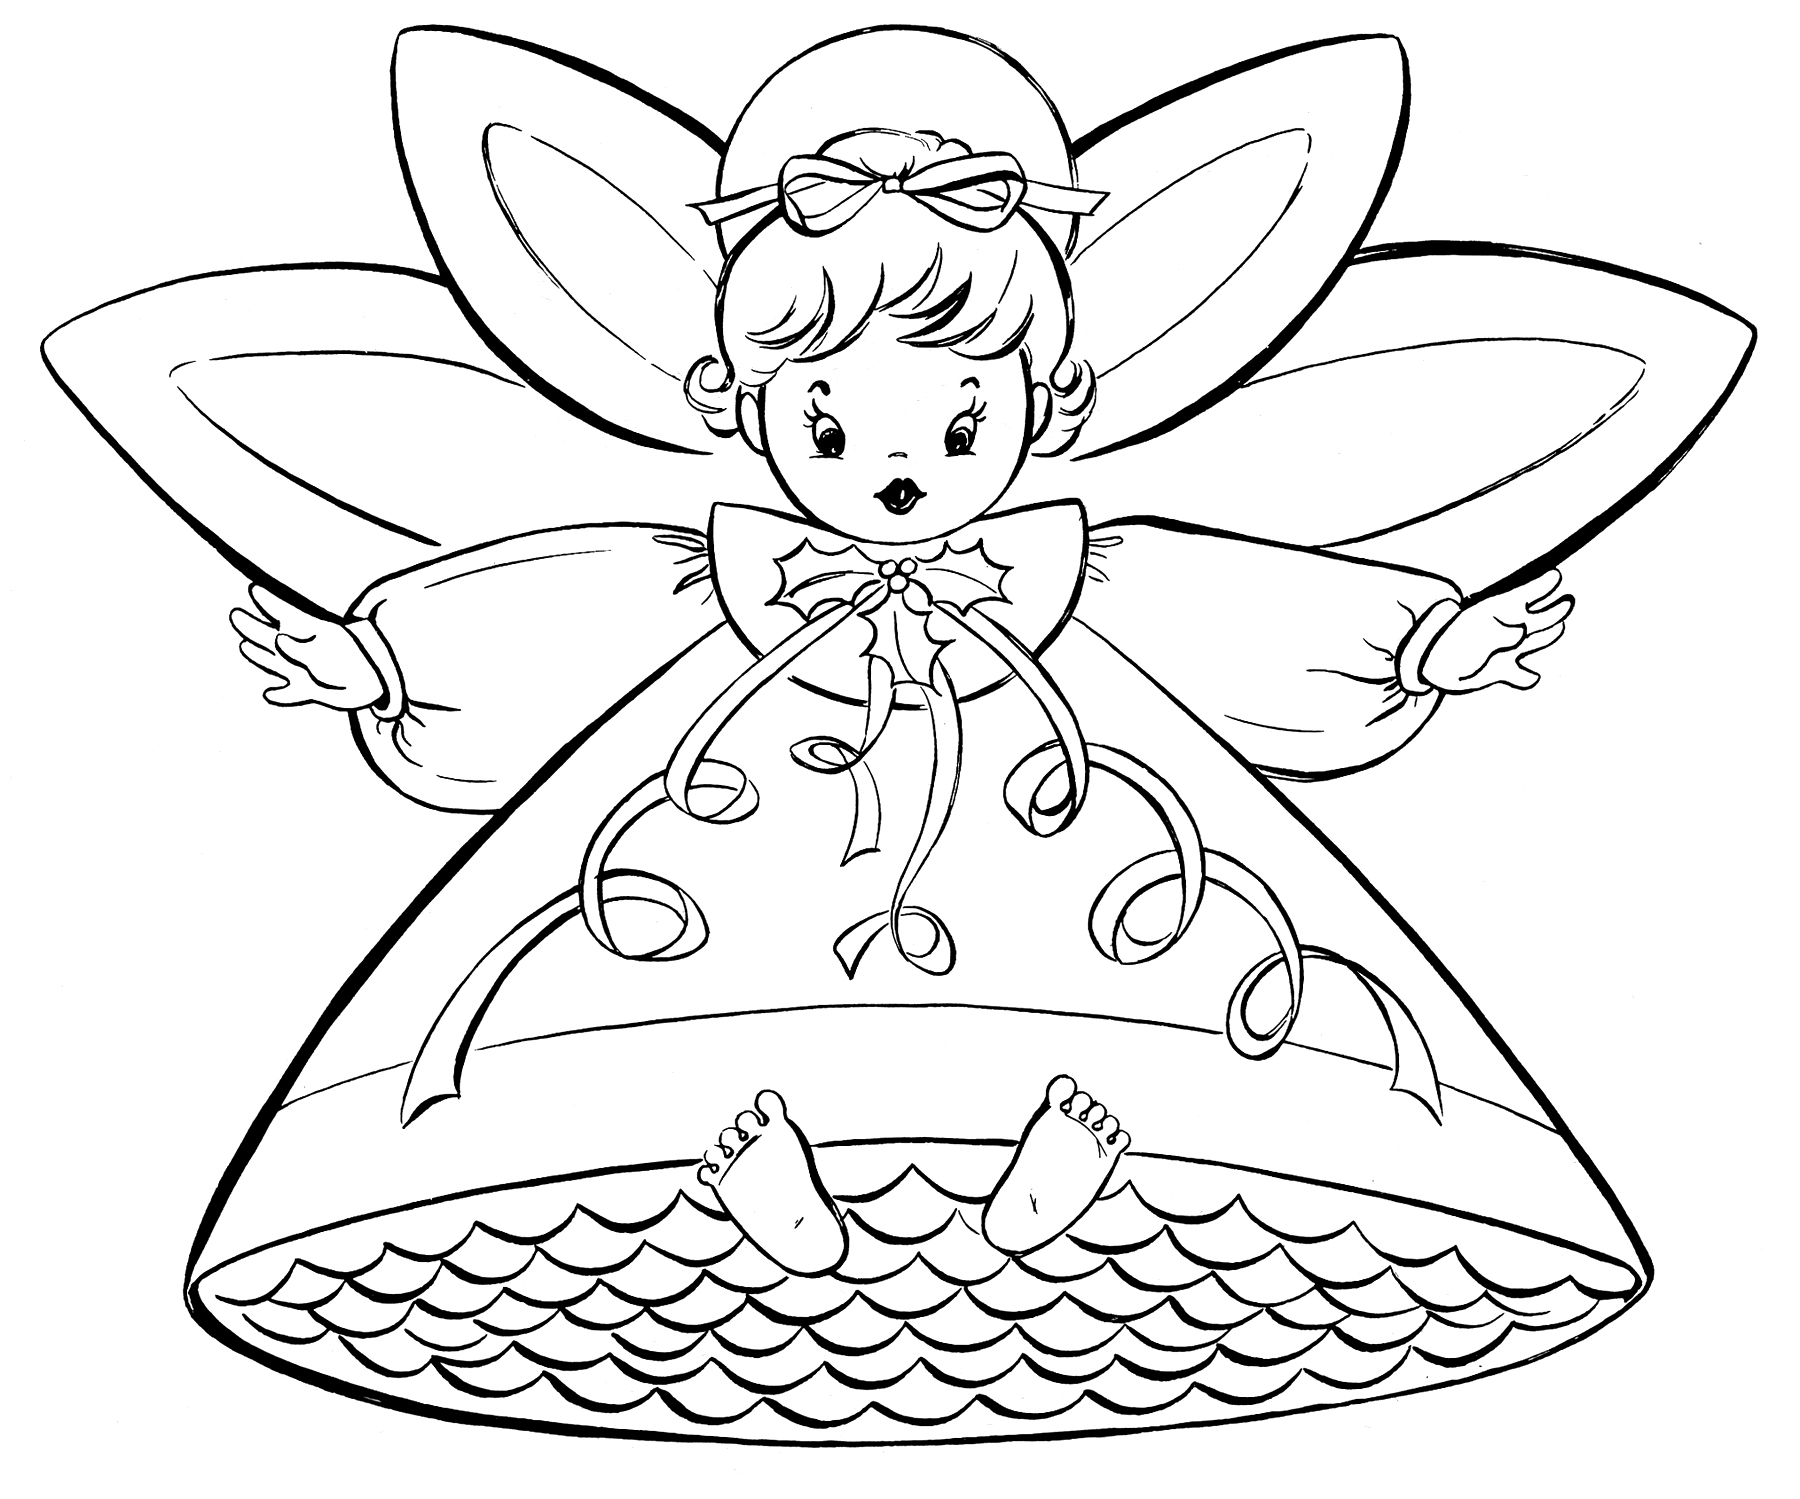 coloring sheets for christmas free christmas coloring pages retro angels the for christmas sheets coloring